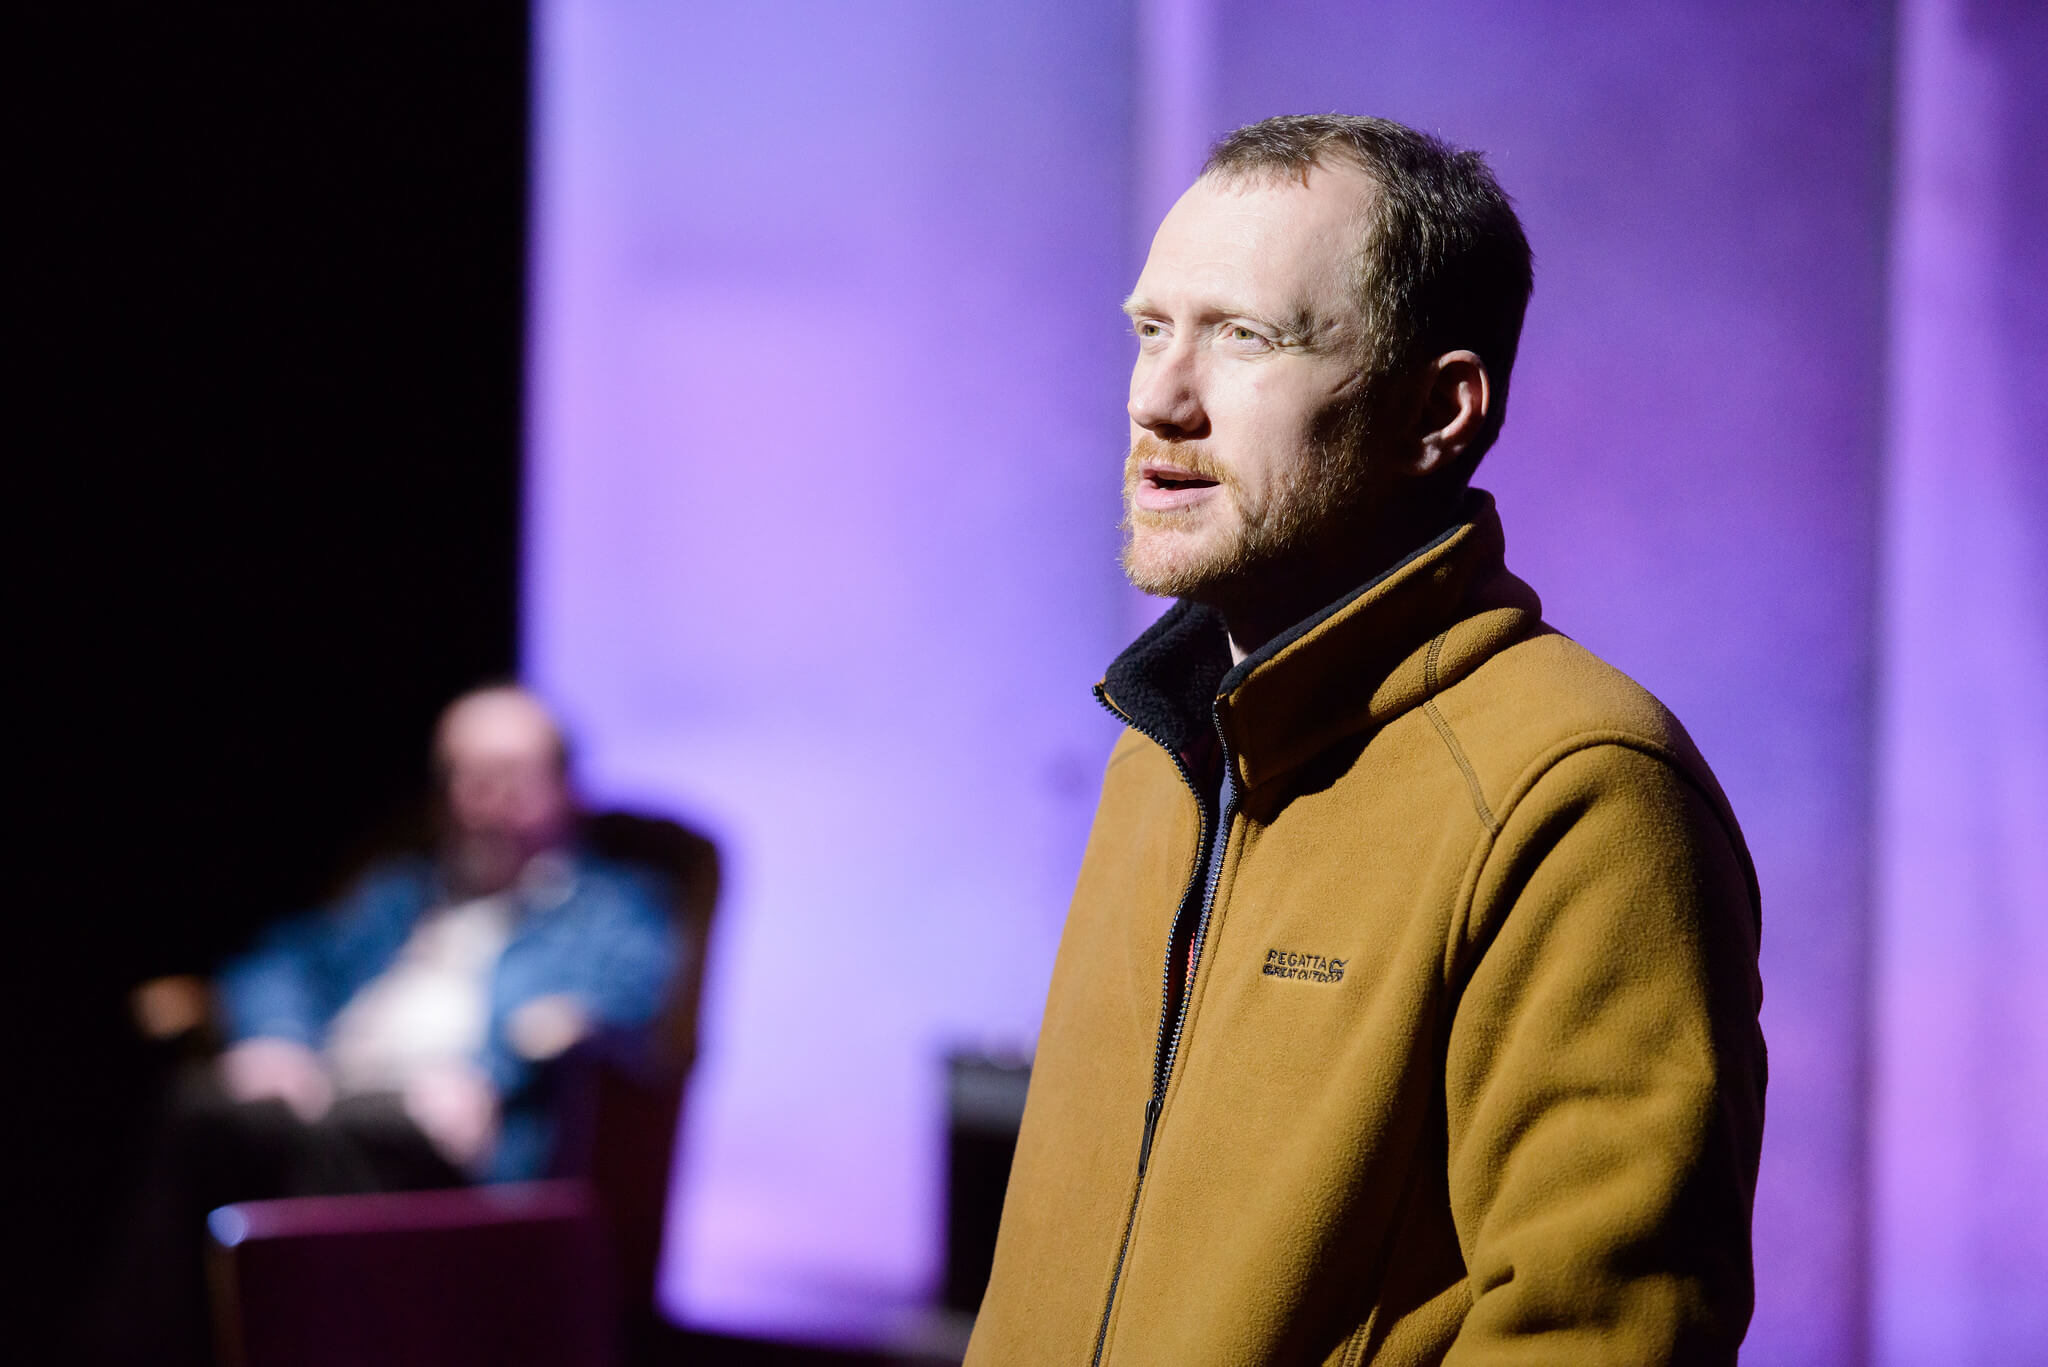 Fibres Film production image showing Ali Craig well lit on stage with Jonathan Watson sitting out of focus in the background